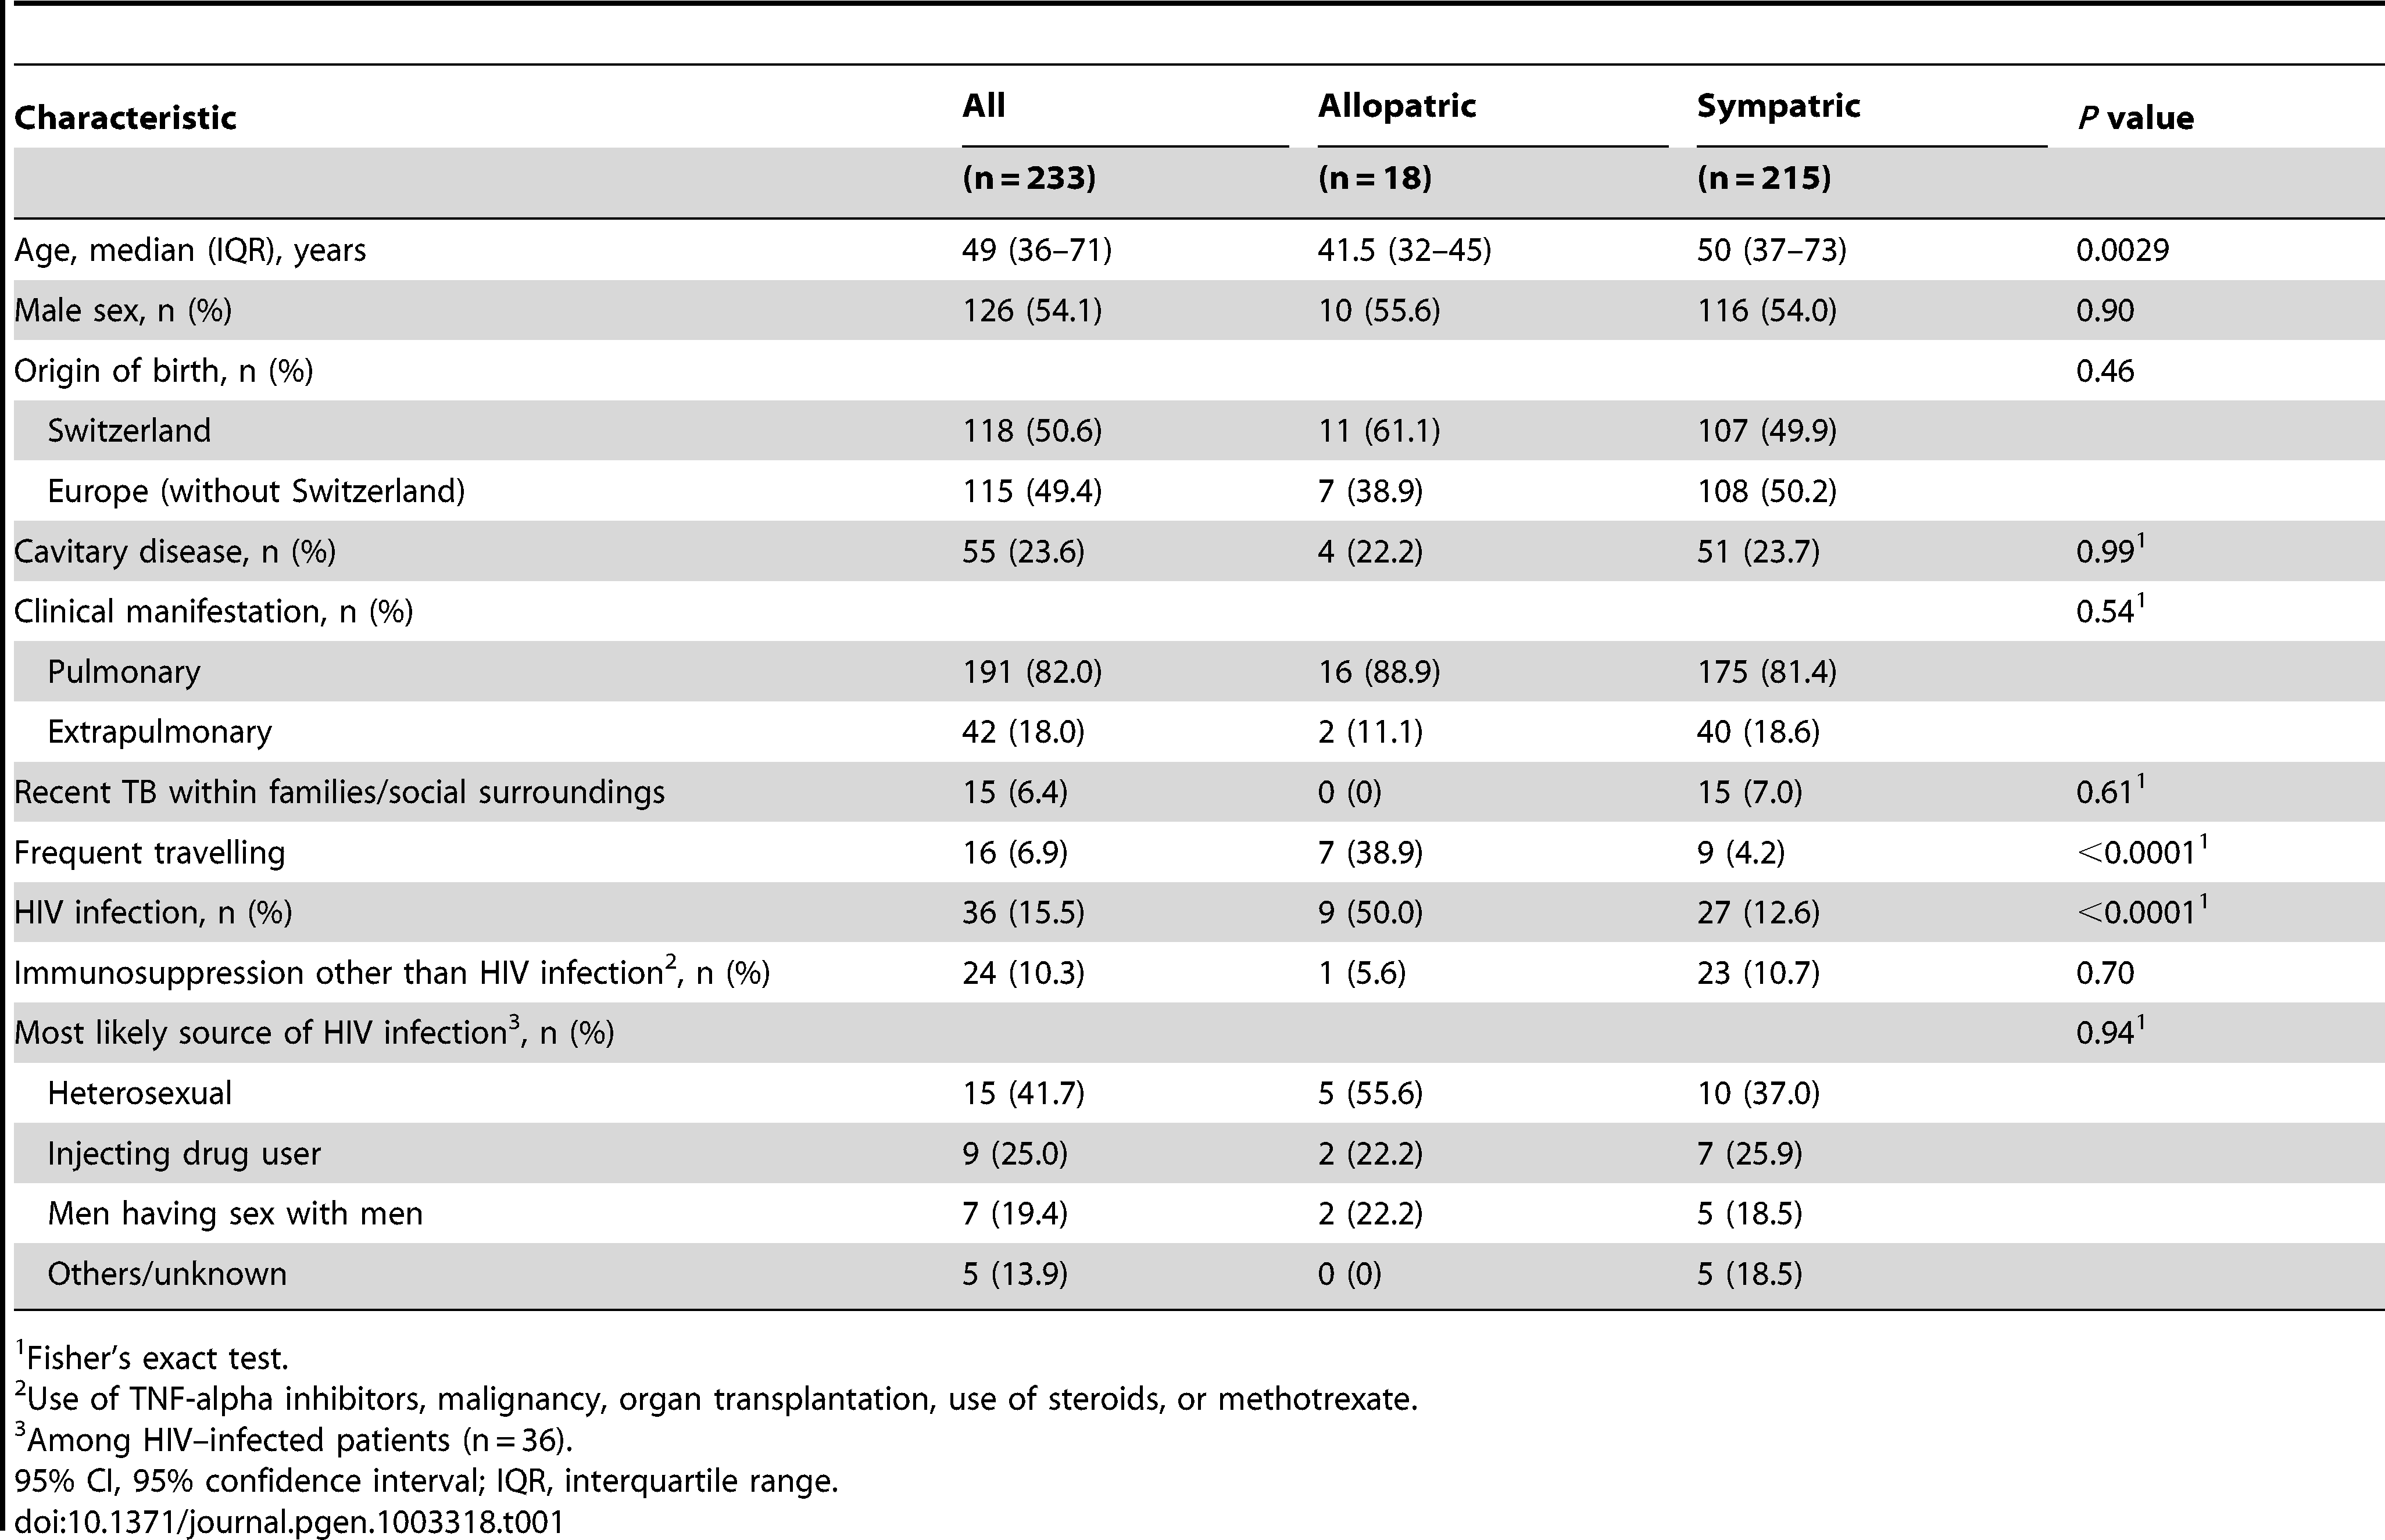 Patient characteristics of tuberculosis (TB) patients born in Europe, by presence of allopatric and sympatric <i>Mycobacterium tuberculosis</i> strains.